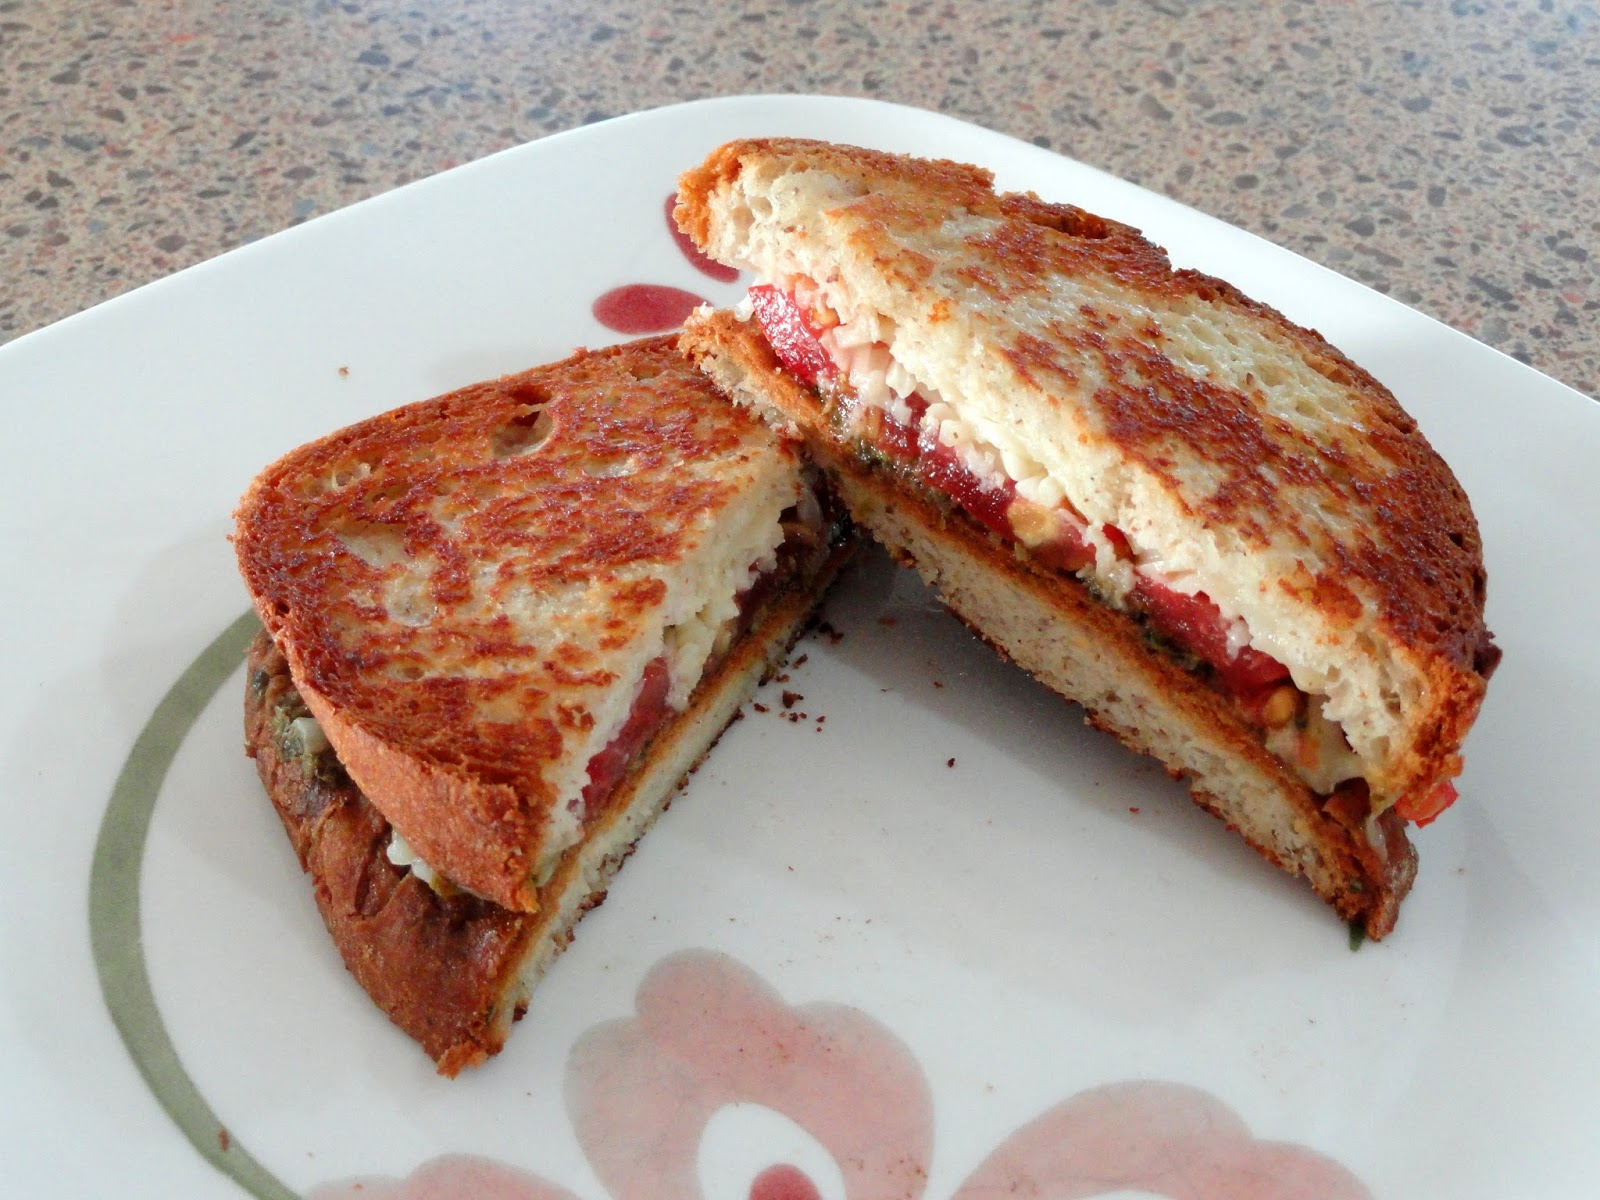 As Good As Gluten: Caprese Grilled Cheese Sandwich